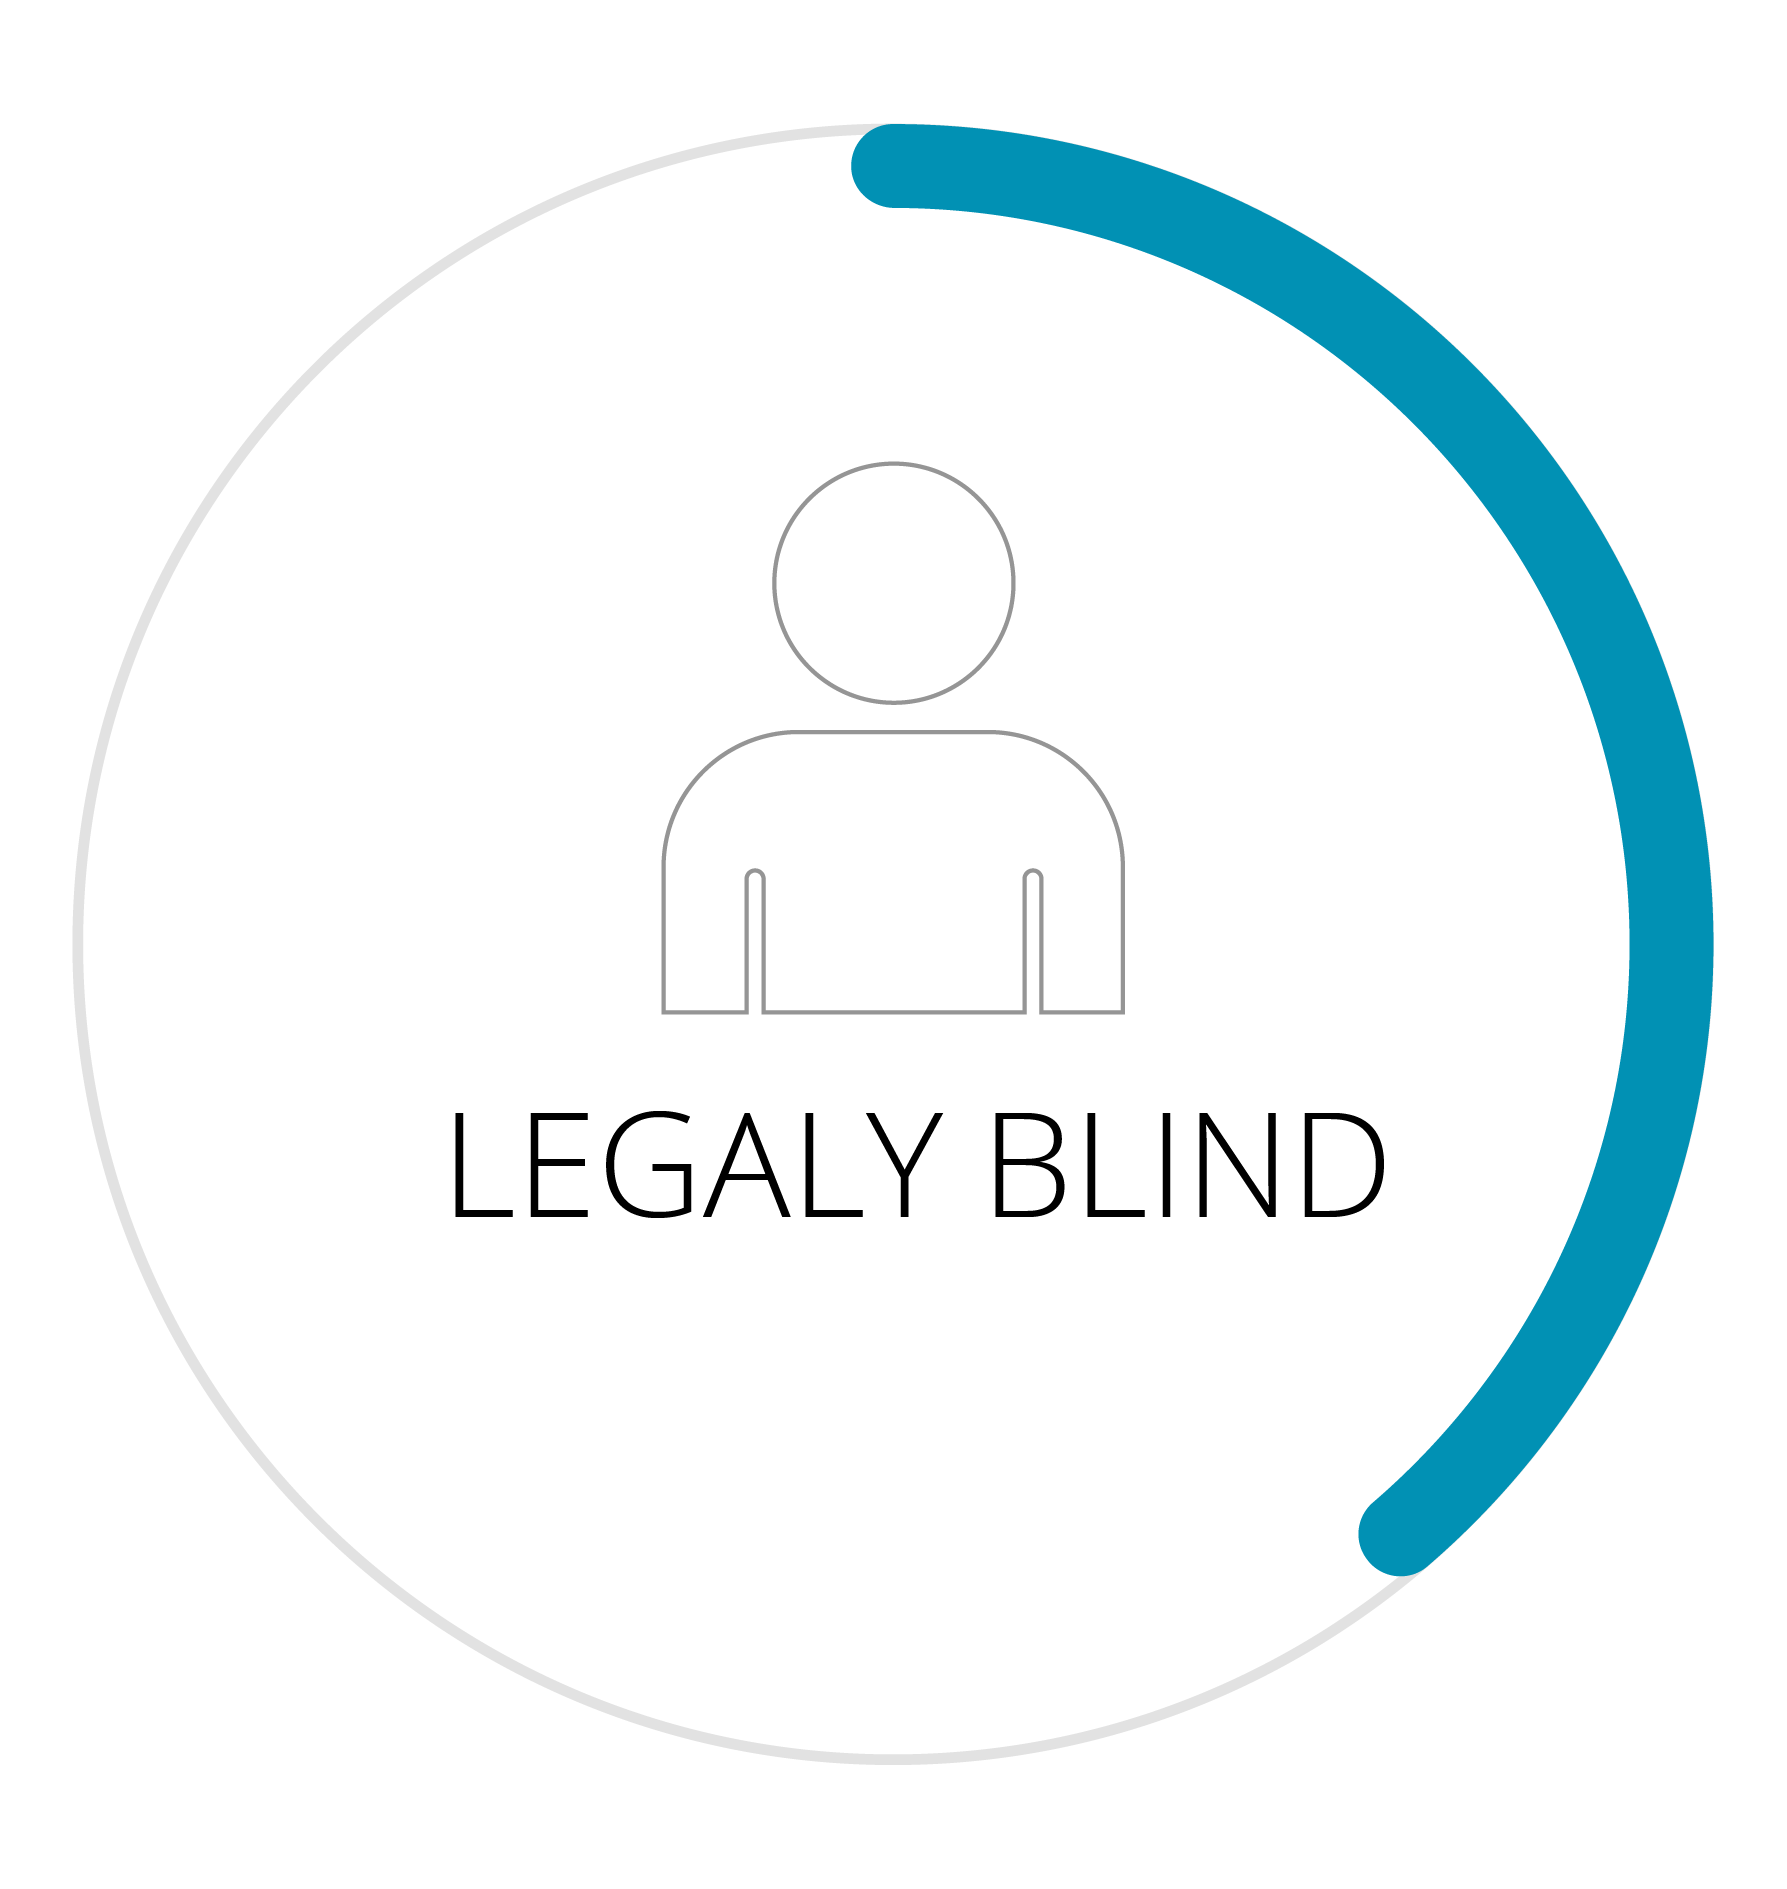 1.3 MILLION PEOPLE ARE LEGALLY BLIND. BEST CORRECTED VISION OF 20/200